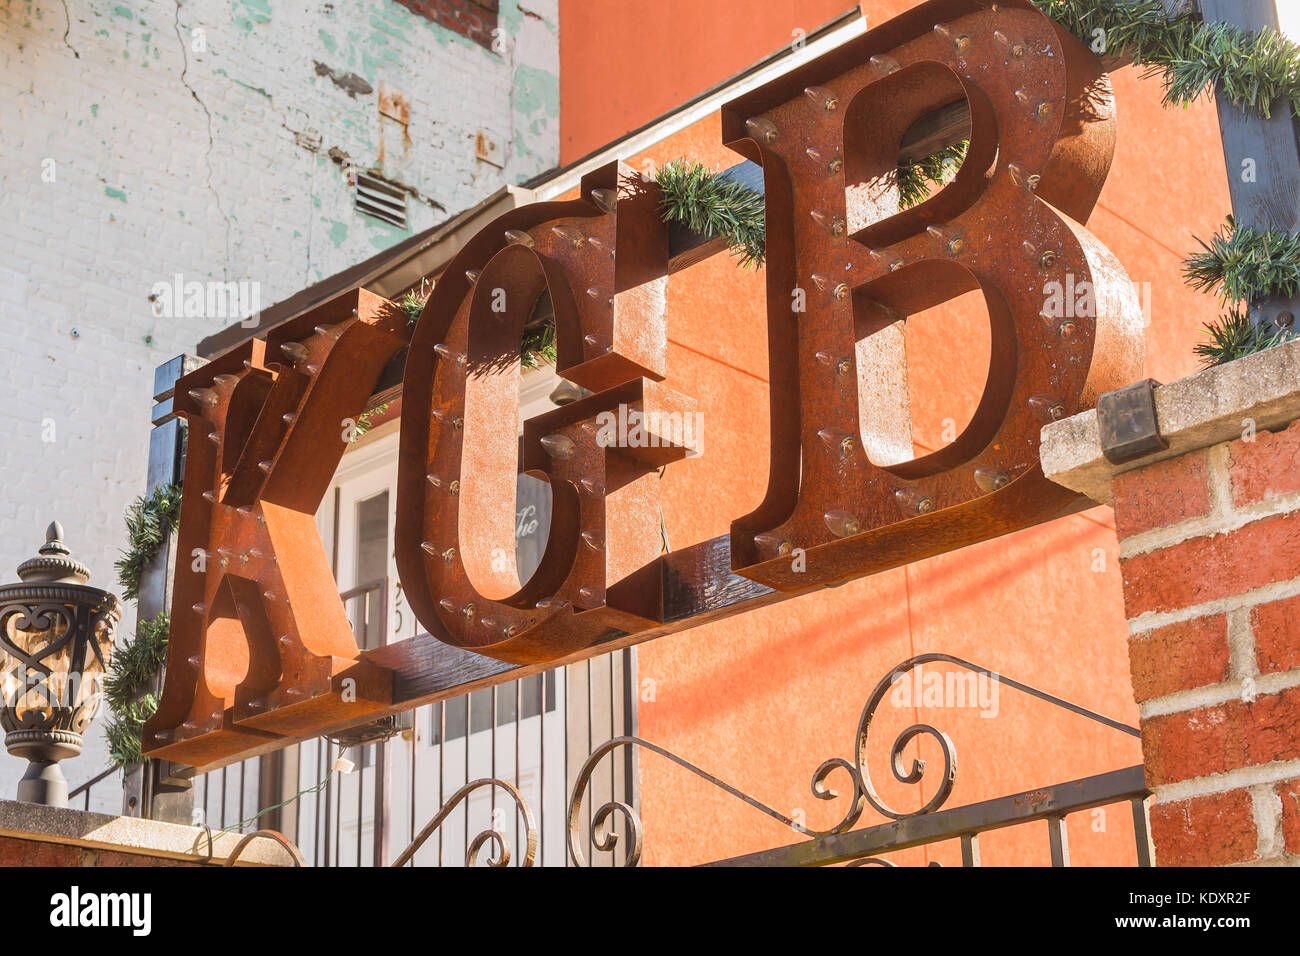 Entry way to KGB lounge - Stock Image